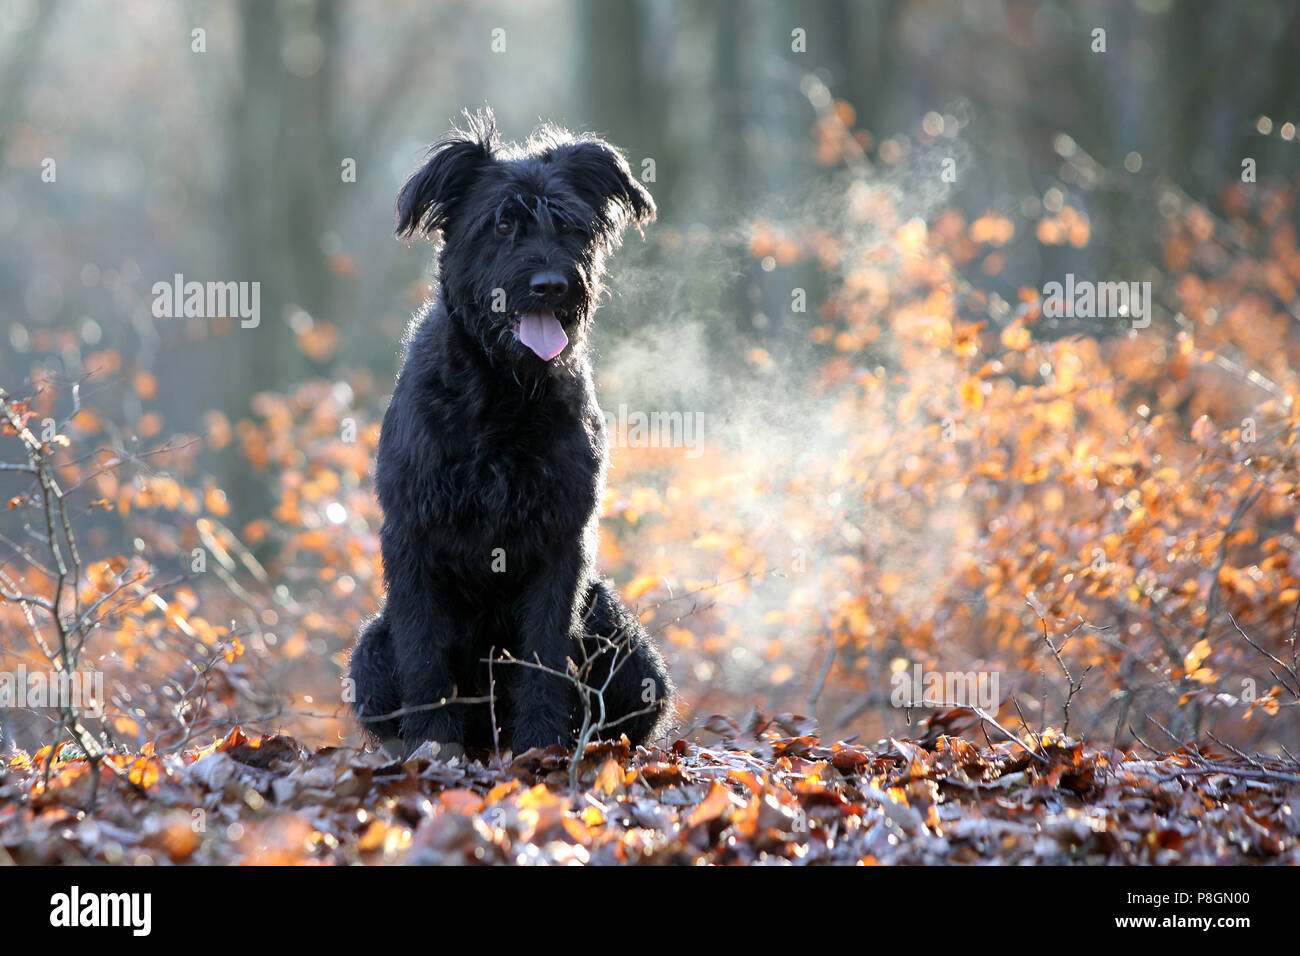 New Kaetwin, Germany, Giant Schnauzer sits panting in the woods on autumn leaves - Stock Image